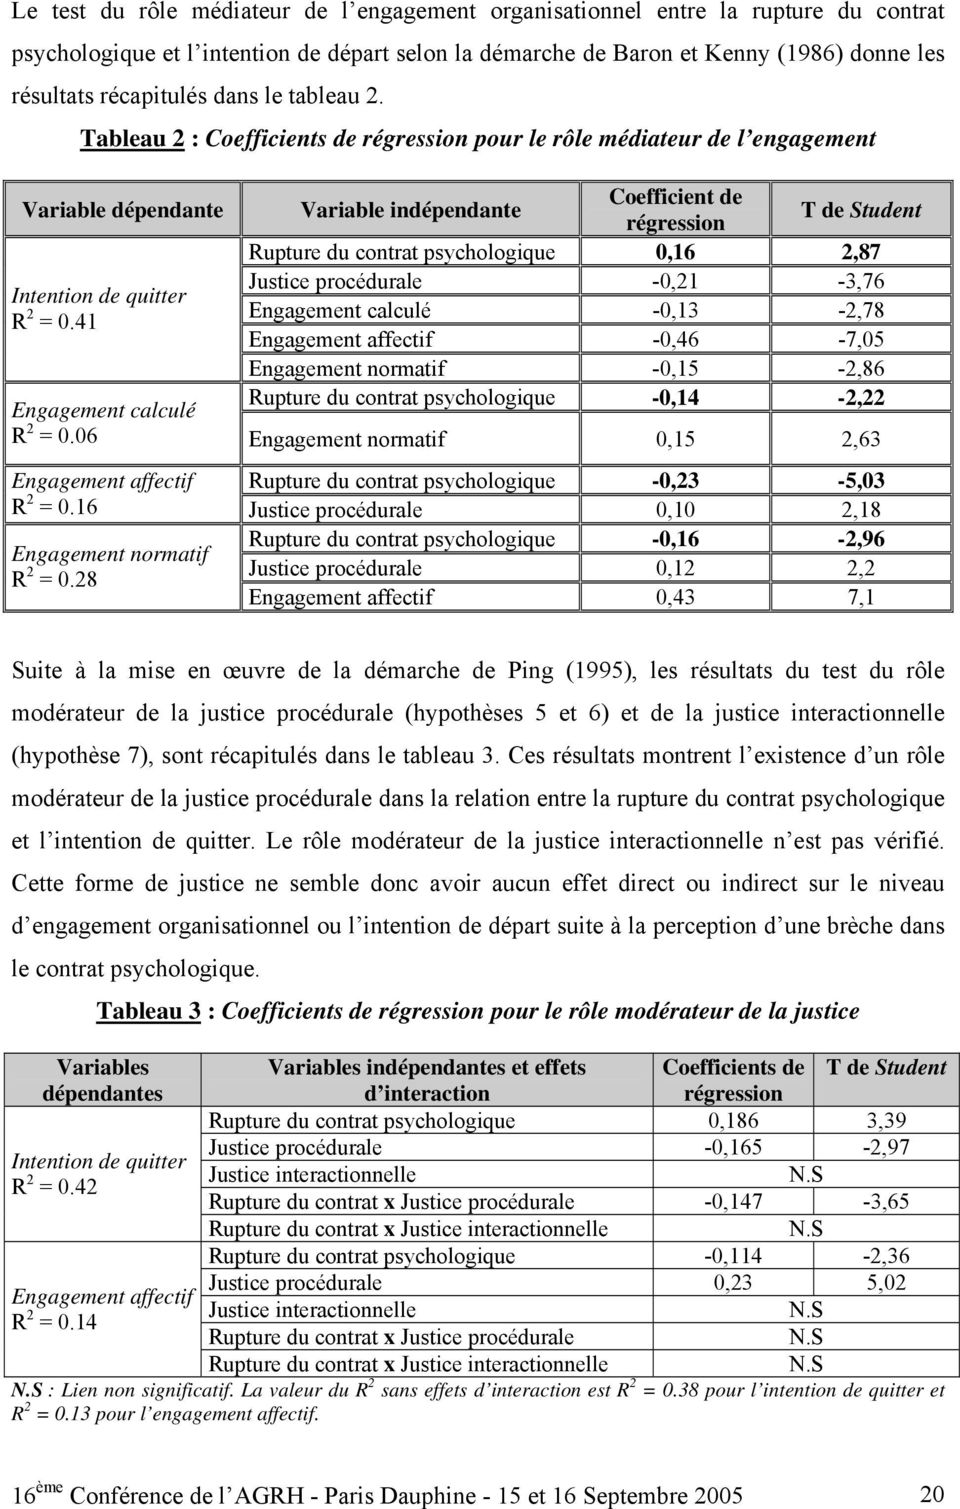 41 Variable indépendante Coefficient de régression T de Student Rupture du contrat psychologique 0,16 2,87 Justice procédurale -0,21-3,76 Engagement calculé -0,13-2,78 Engagement affectif -0,46-7,05